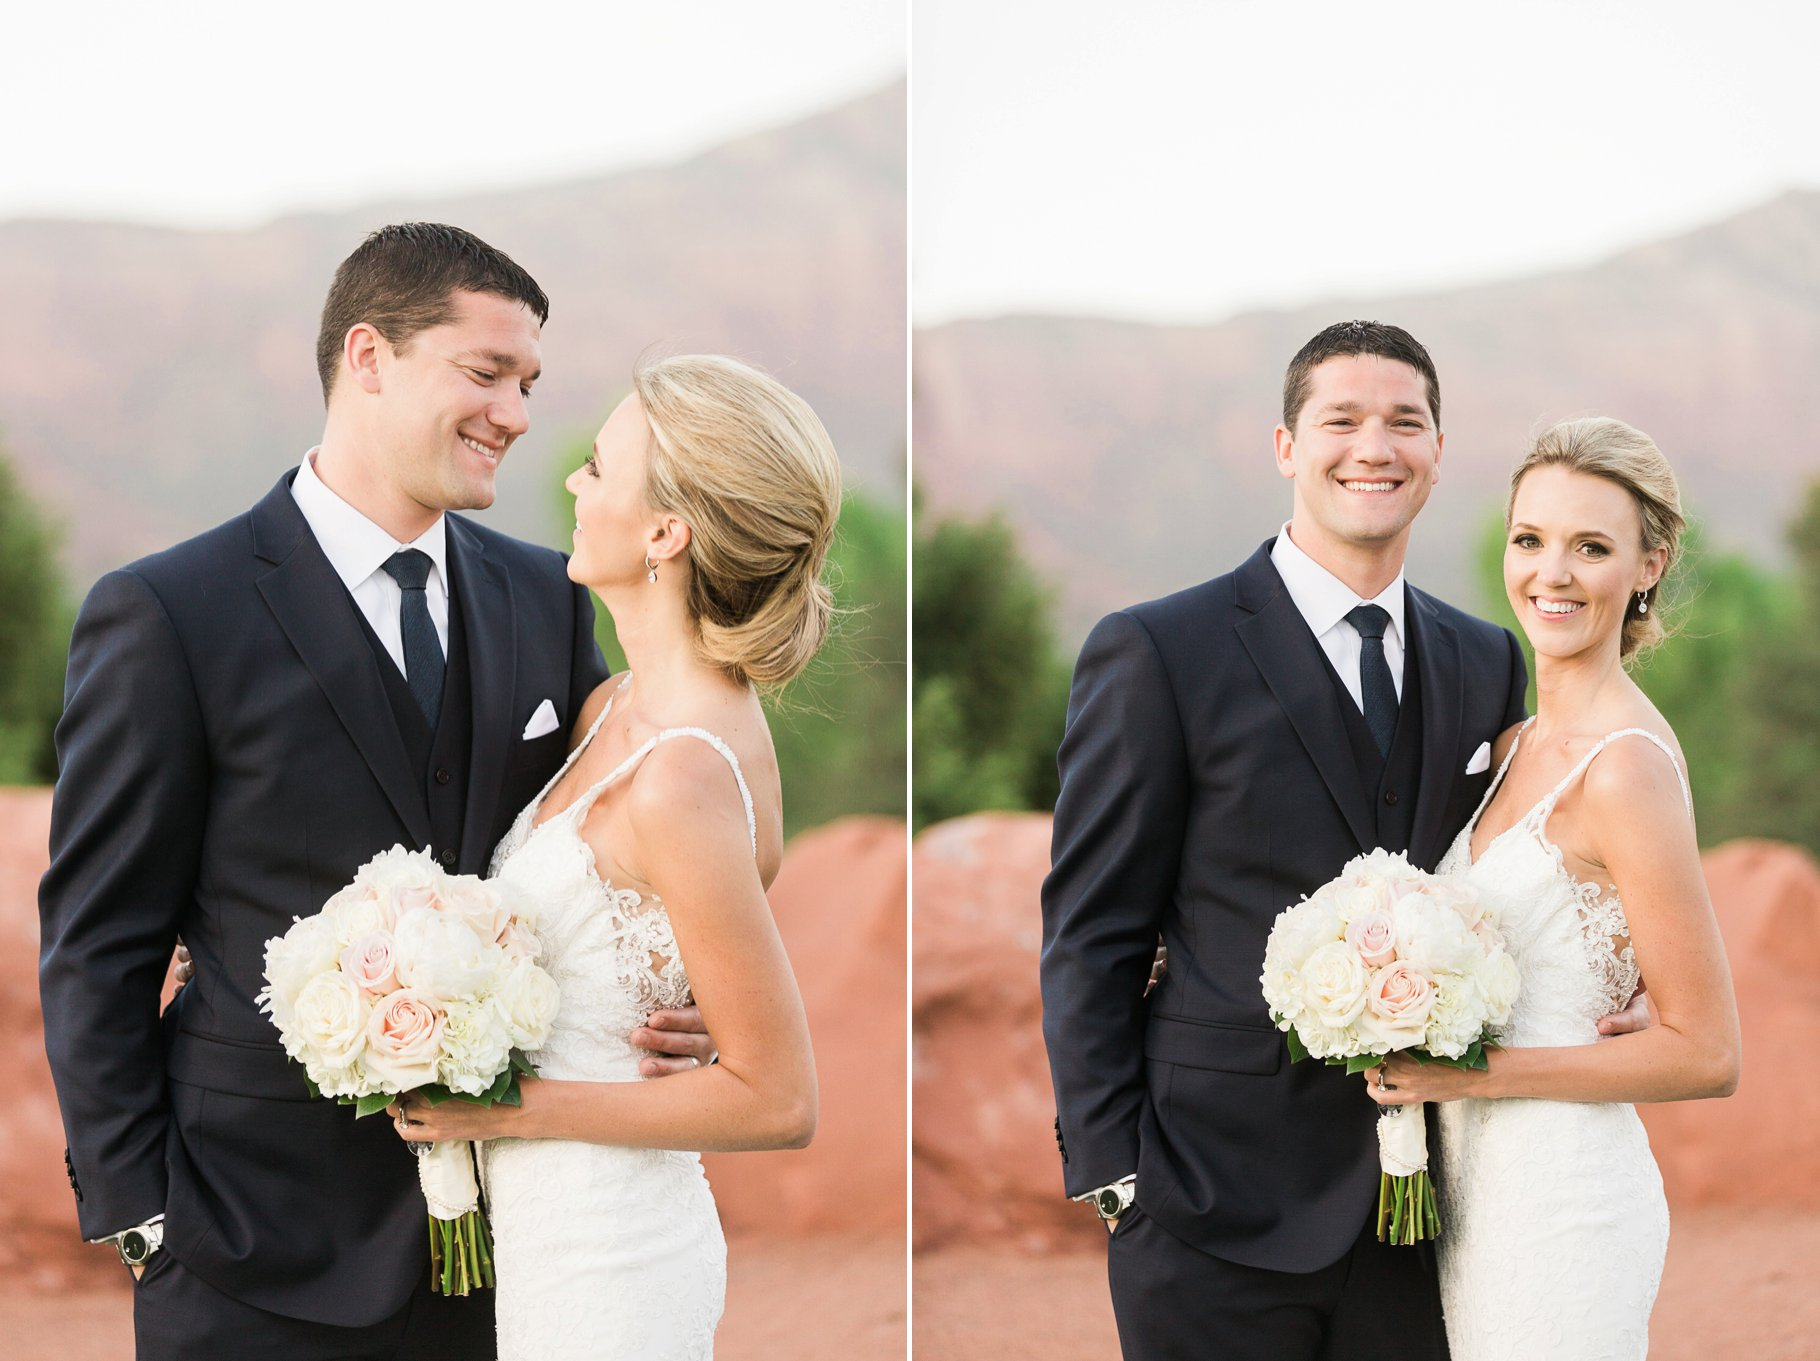 sedona wedding-109_GRETCHEN WAKEMAN PHOTOGRAPHY.jpg